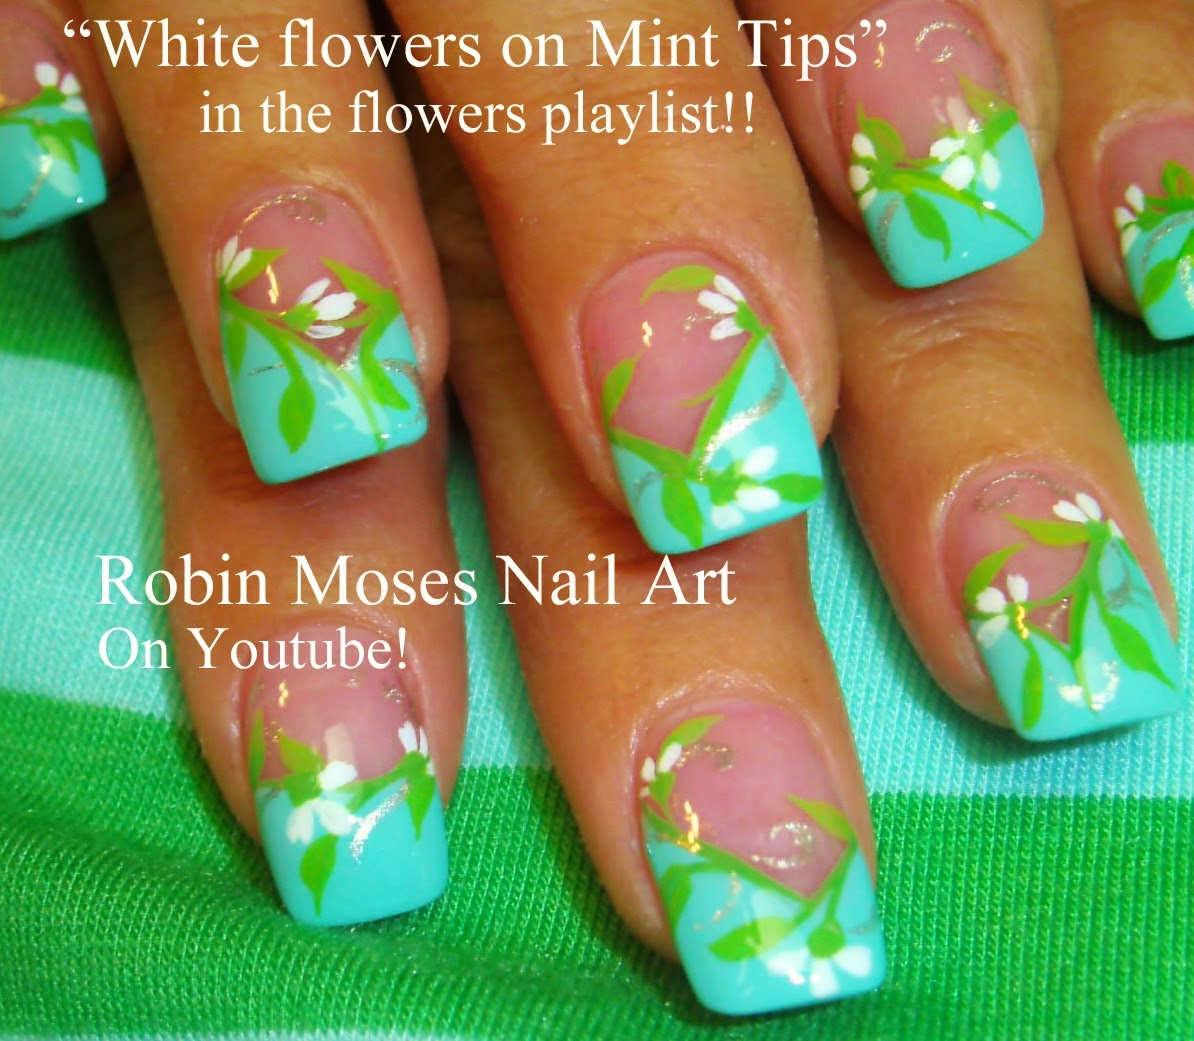 Nail art by robin moses easy flower nails flower nails nail wedding nails wedding ideas mint green nails lime nails blue tip nails seafoam nails teal nails chevron tips how to do it yourself robin solutioingenieria Gallery